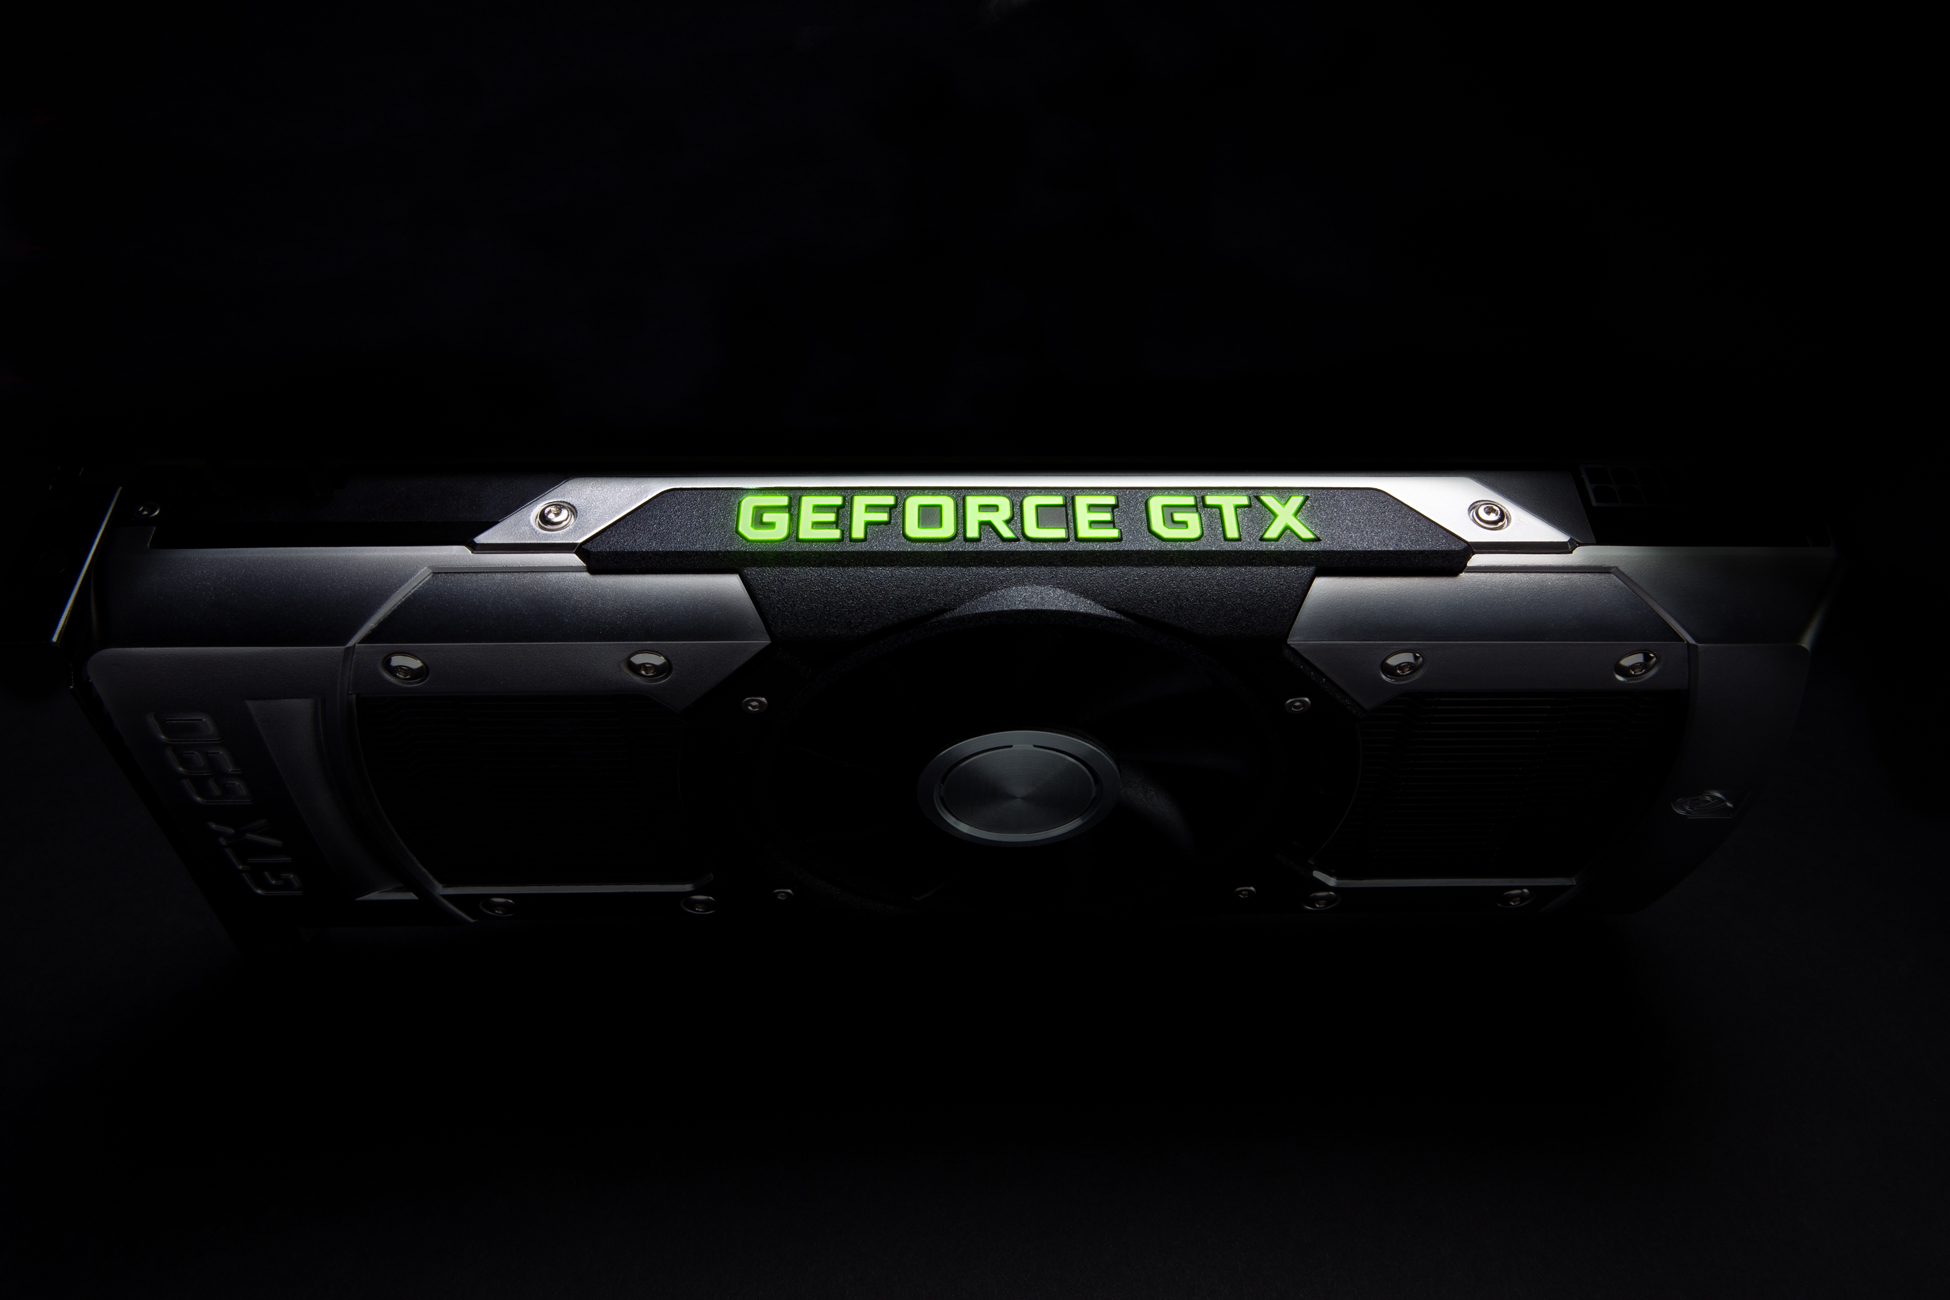 GeForce-GTX-690-image06.jpg